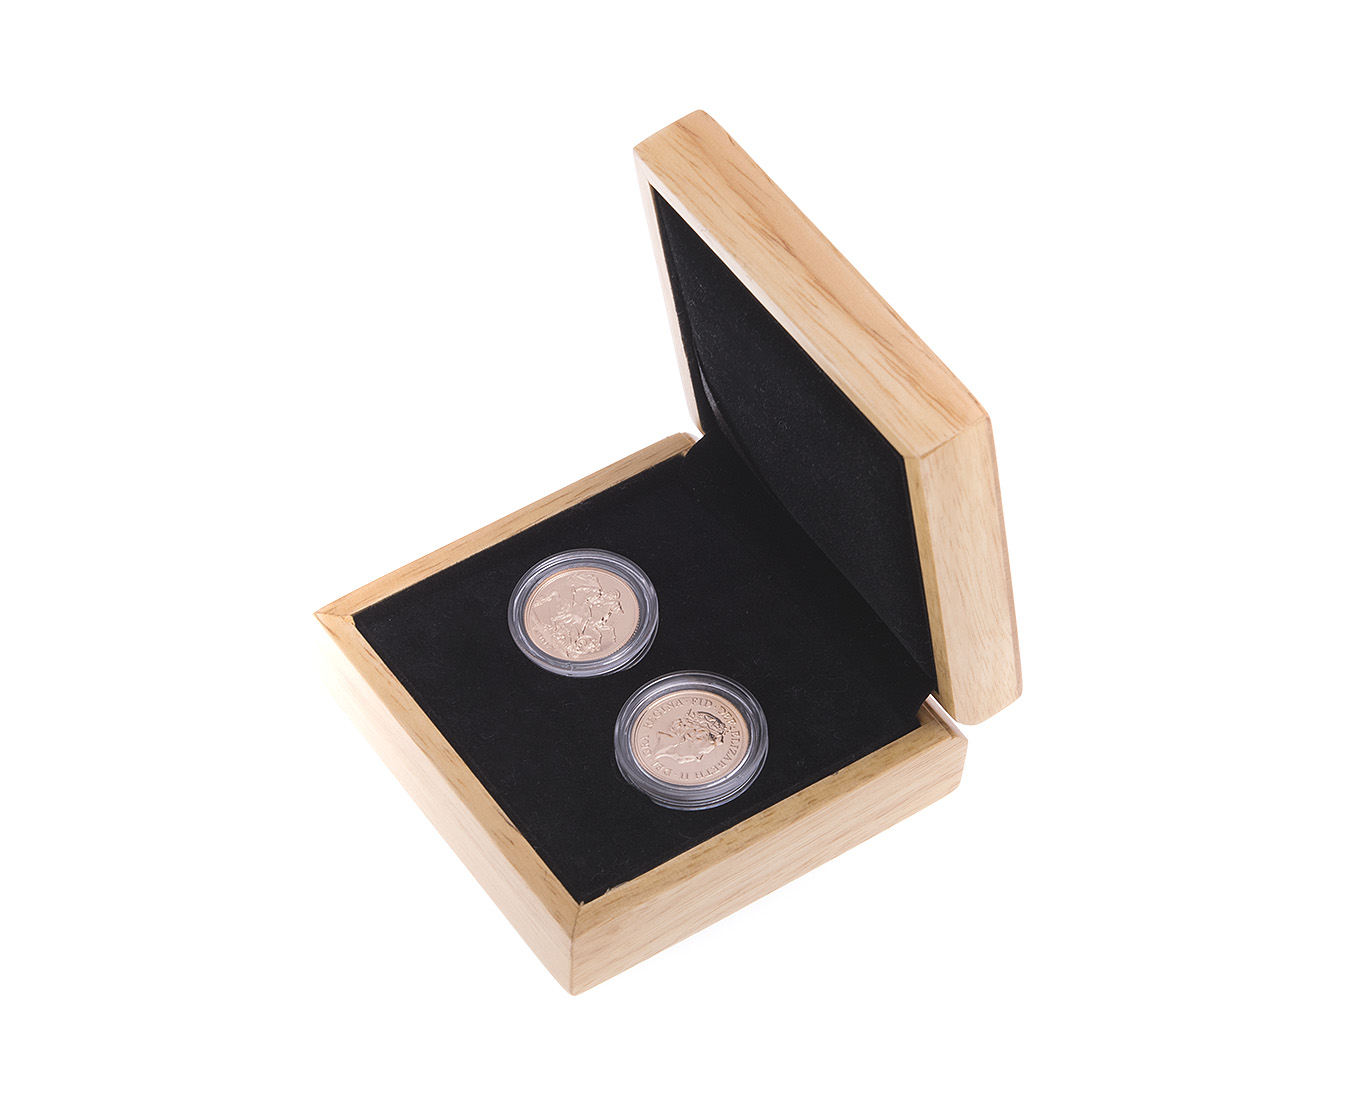 Two 2017 Sovereign Gold Coin in Gift Box